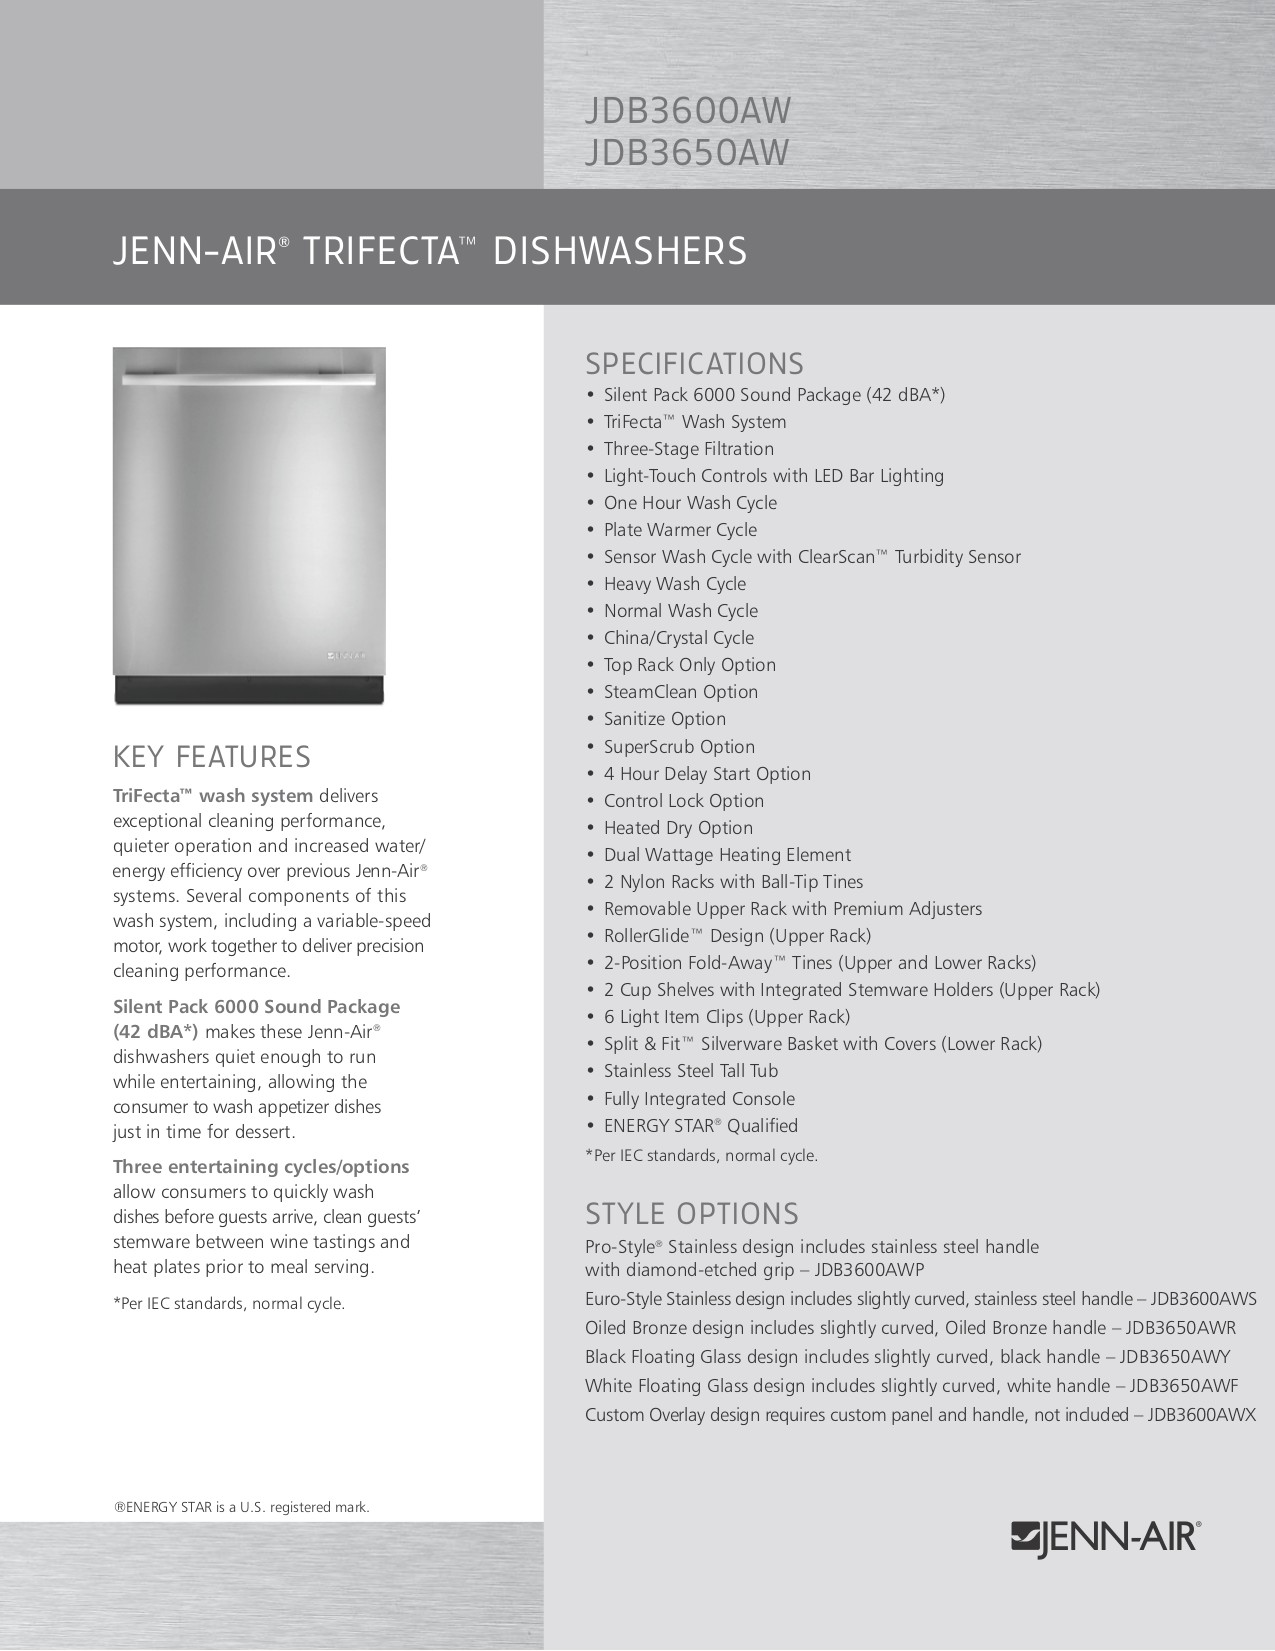 pdf for Jenn-Air Dishwasher TriFecta JDB3650AW manual